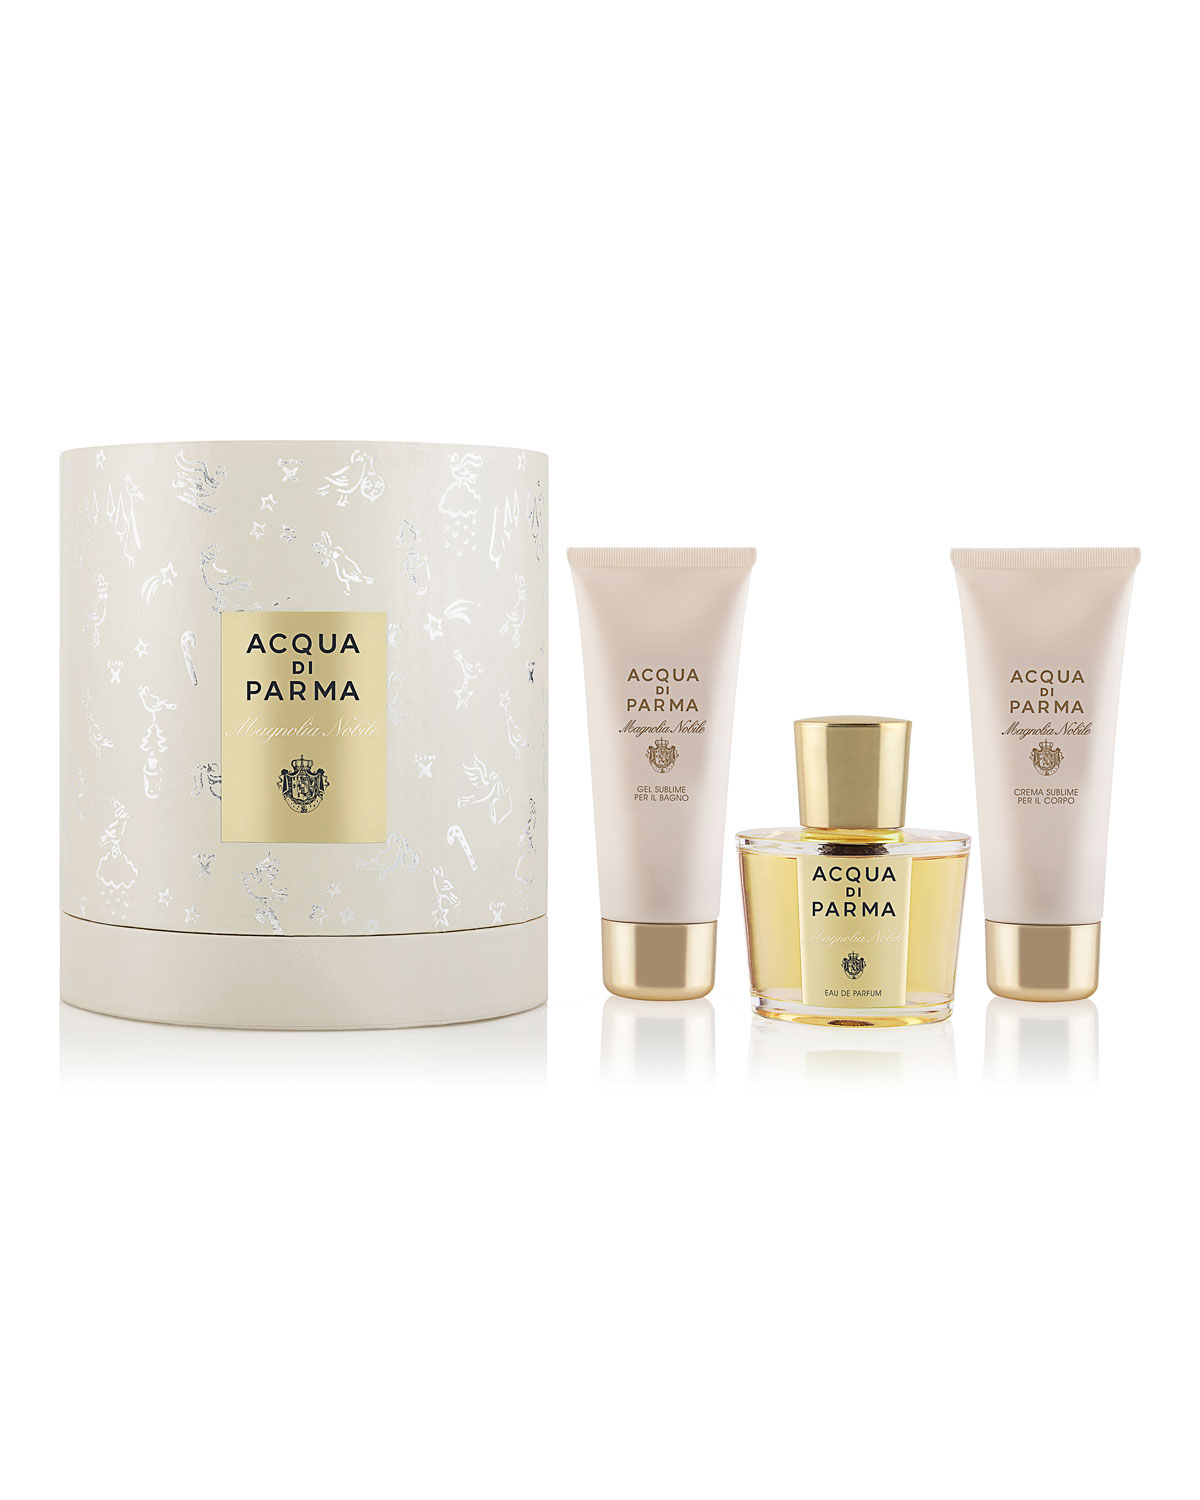 Acqua Di Parma MAGNOLIA NOBILE GIFT SET ($270 VALUE)